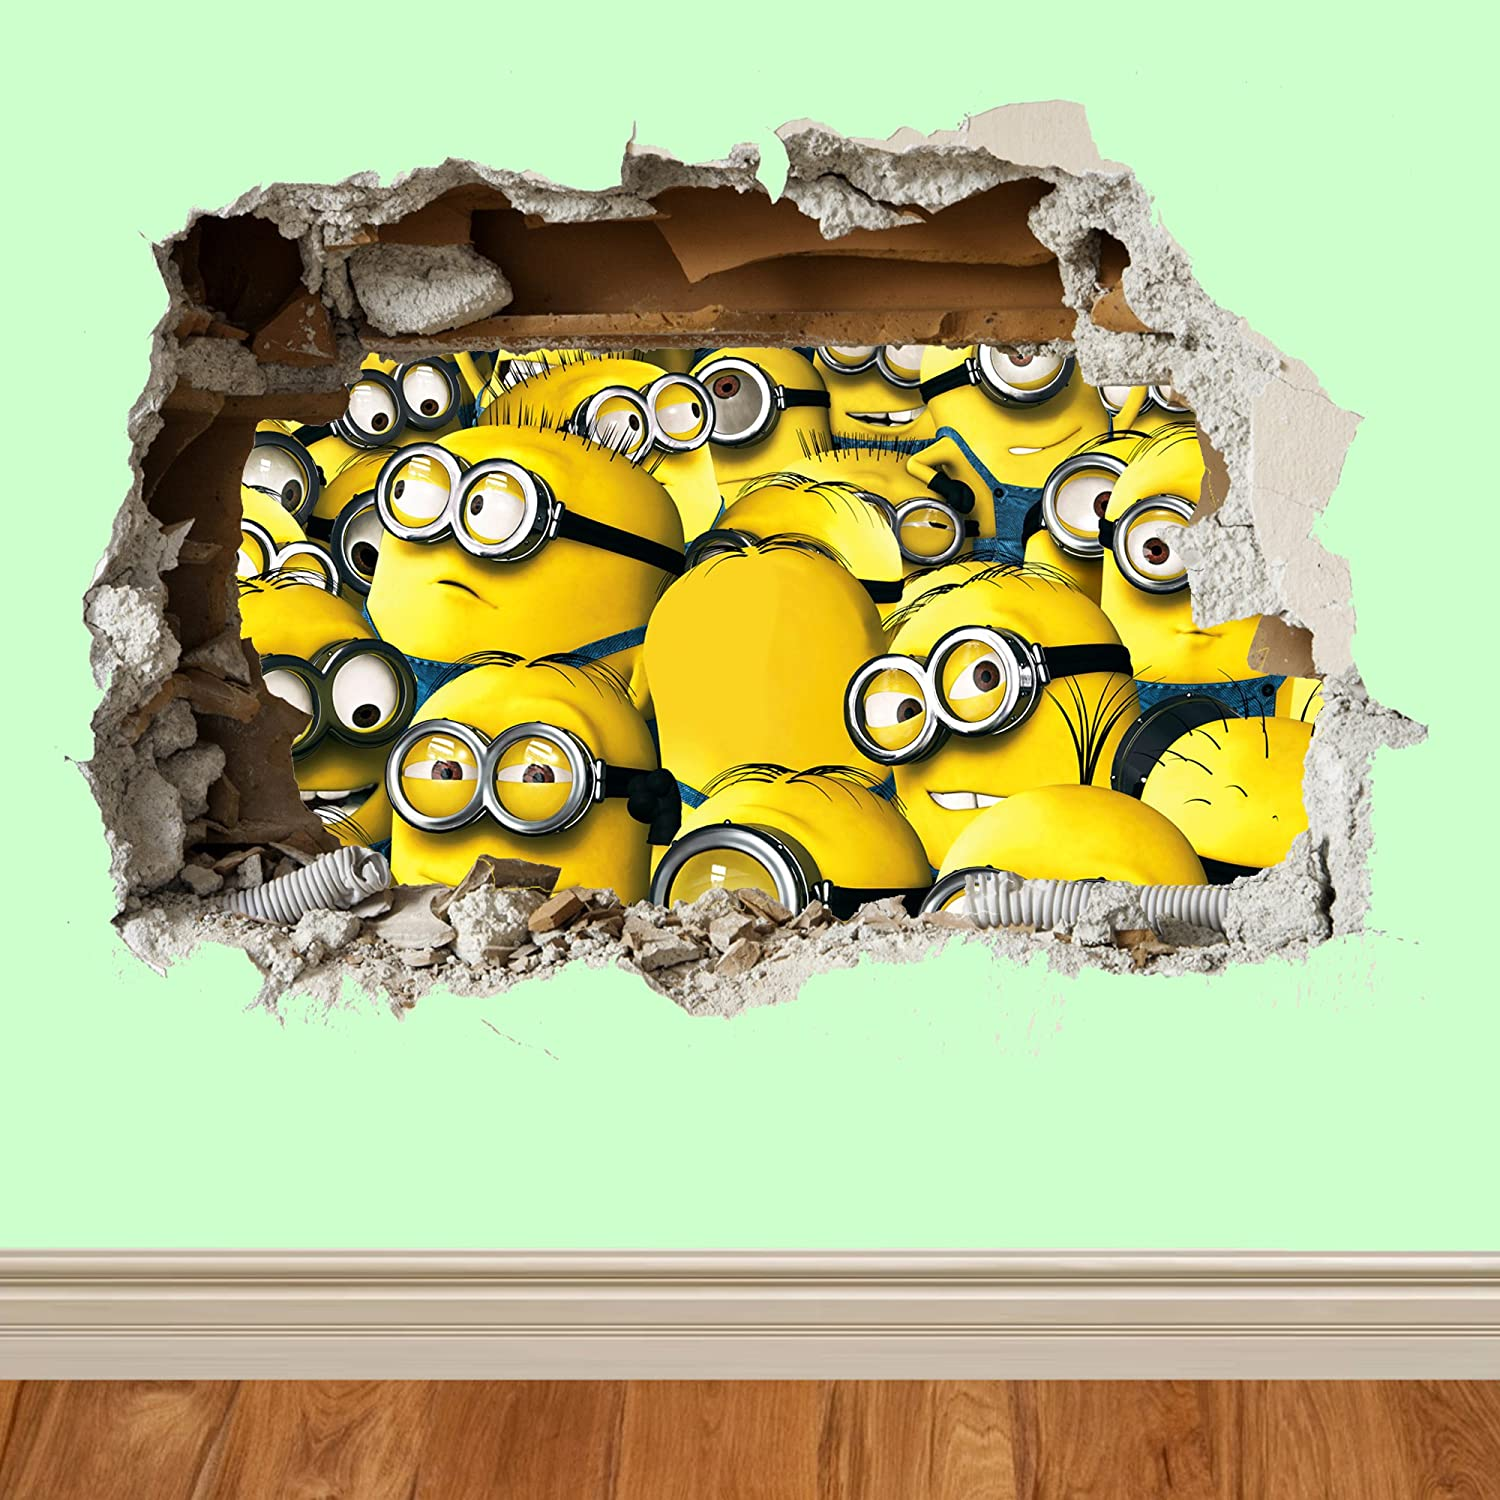 Childrens minions 3d wall smash despicable me wall vinyls wall art childrens minions 3d wall smash despicable me wall vinyls wall art wall stickers wallart 70cm wide customise4utm minions wall smash group amazon amipublicfo Images